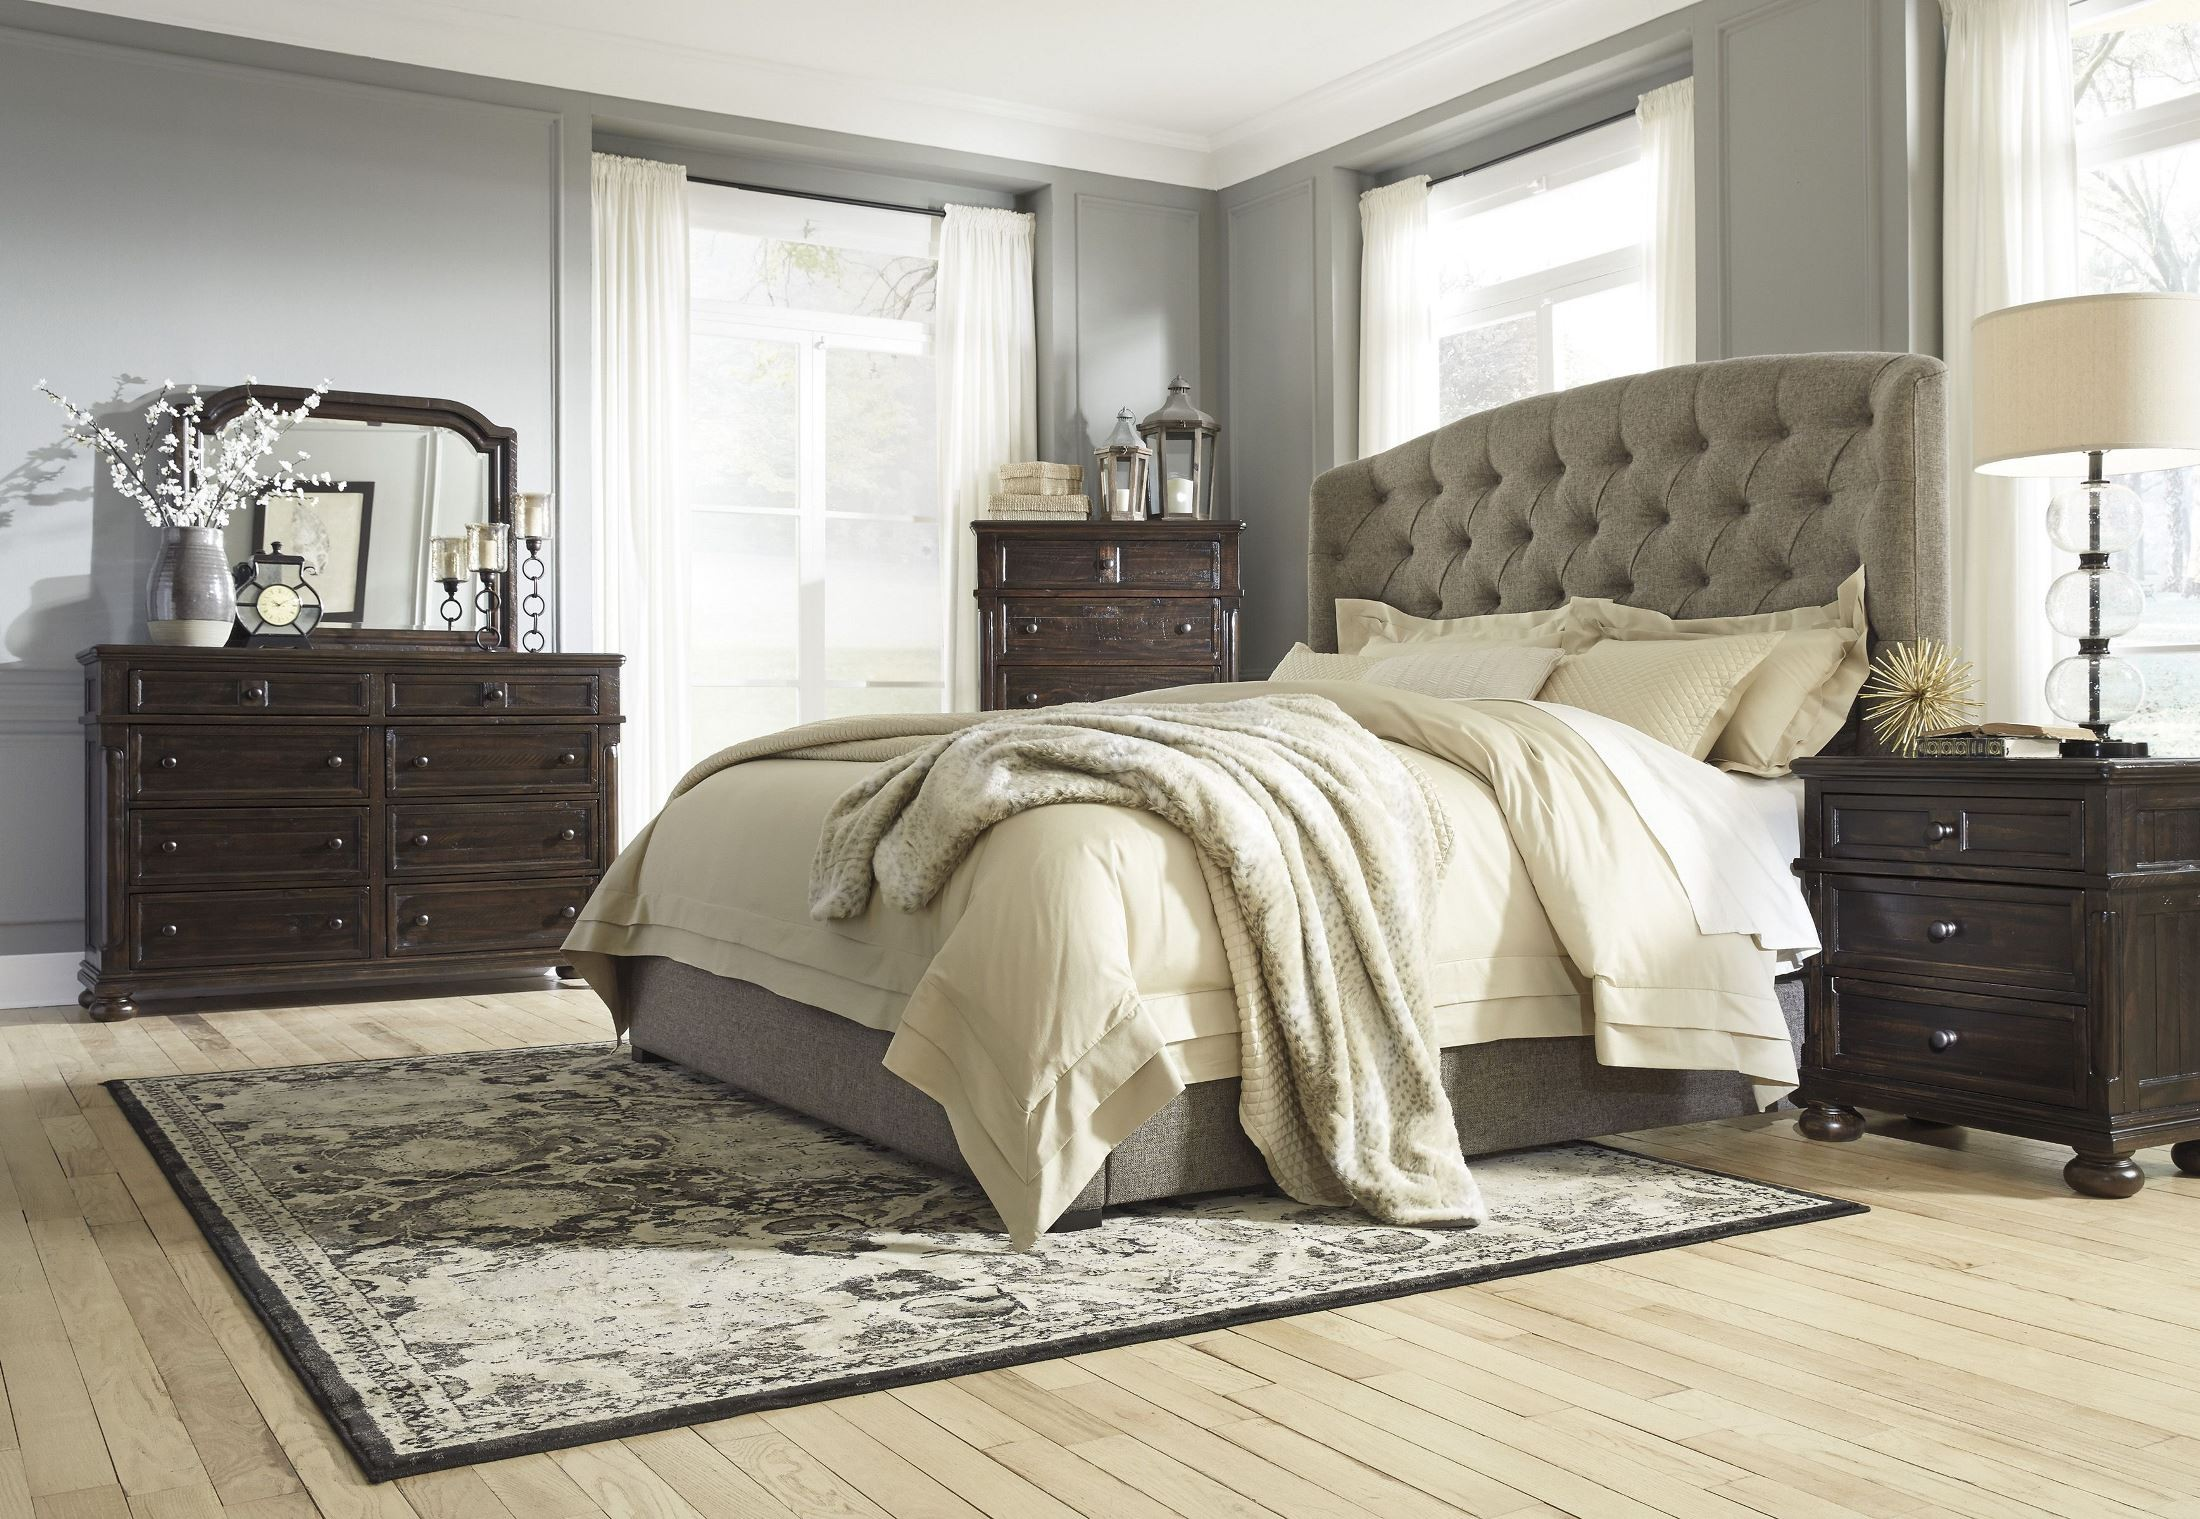 upholstered bedroom furniture gerlane graphite upholstered panel bedroom set b657 74 77 13696